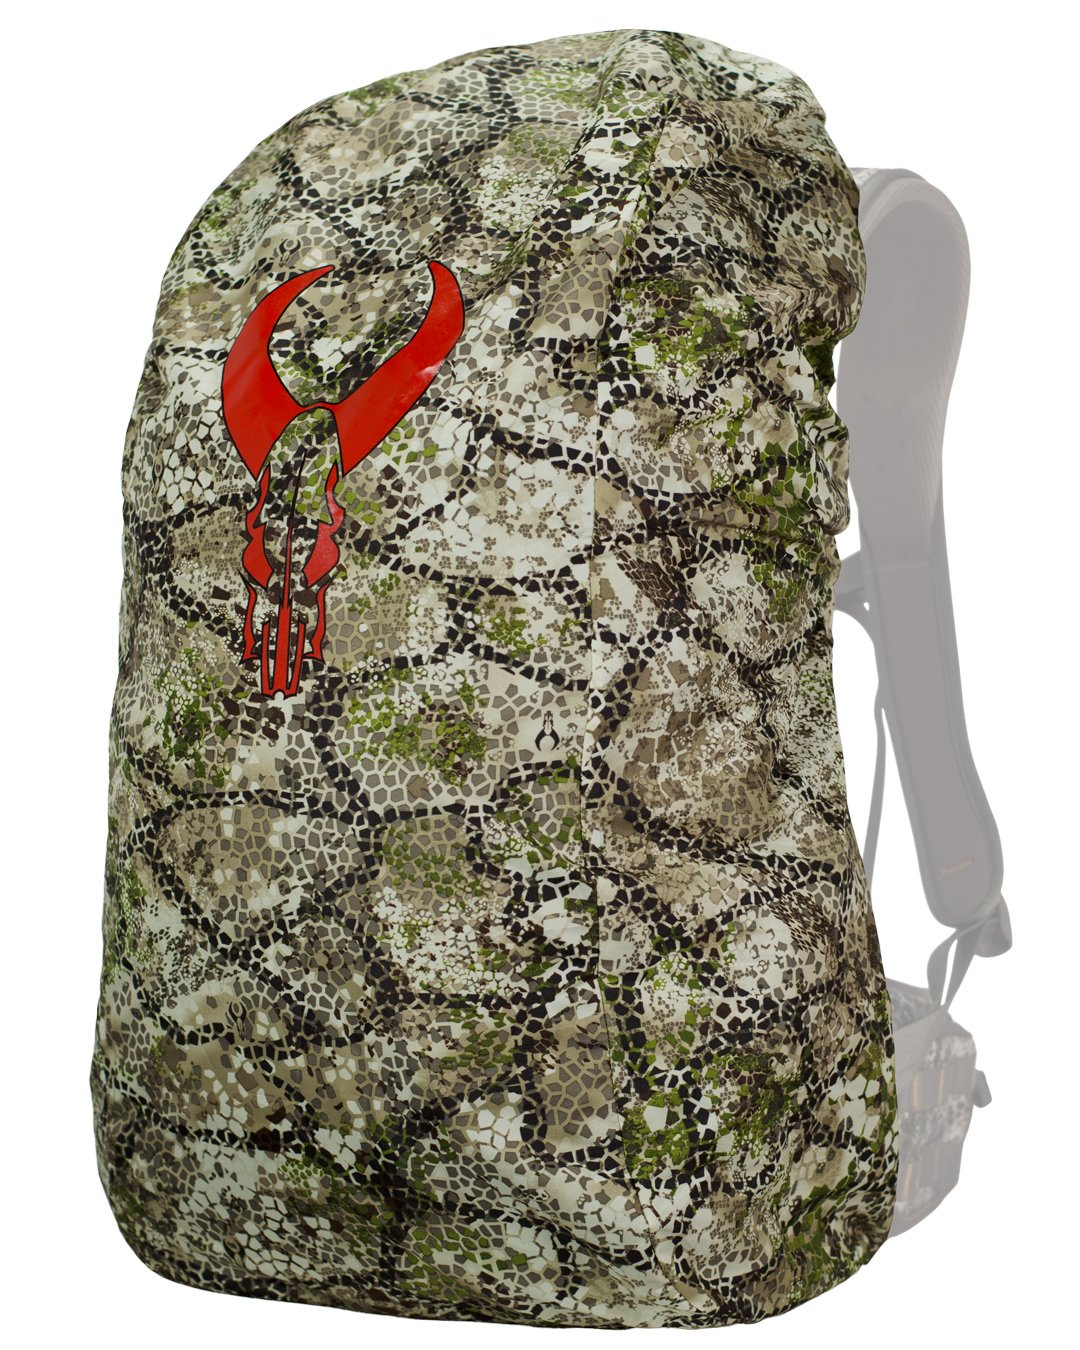 Badlands Waterproof Rain Cover for Hunting Backpacks, Approach FX, Medium